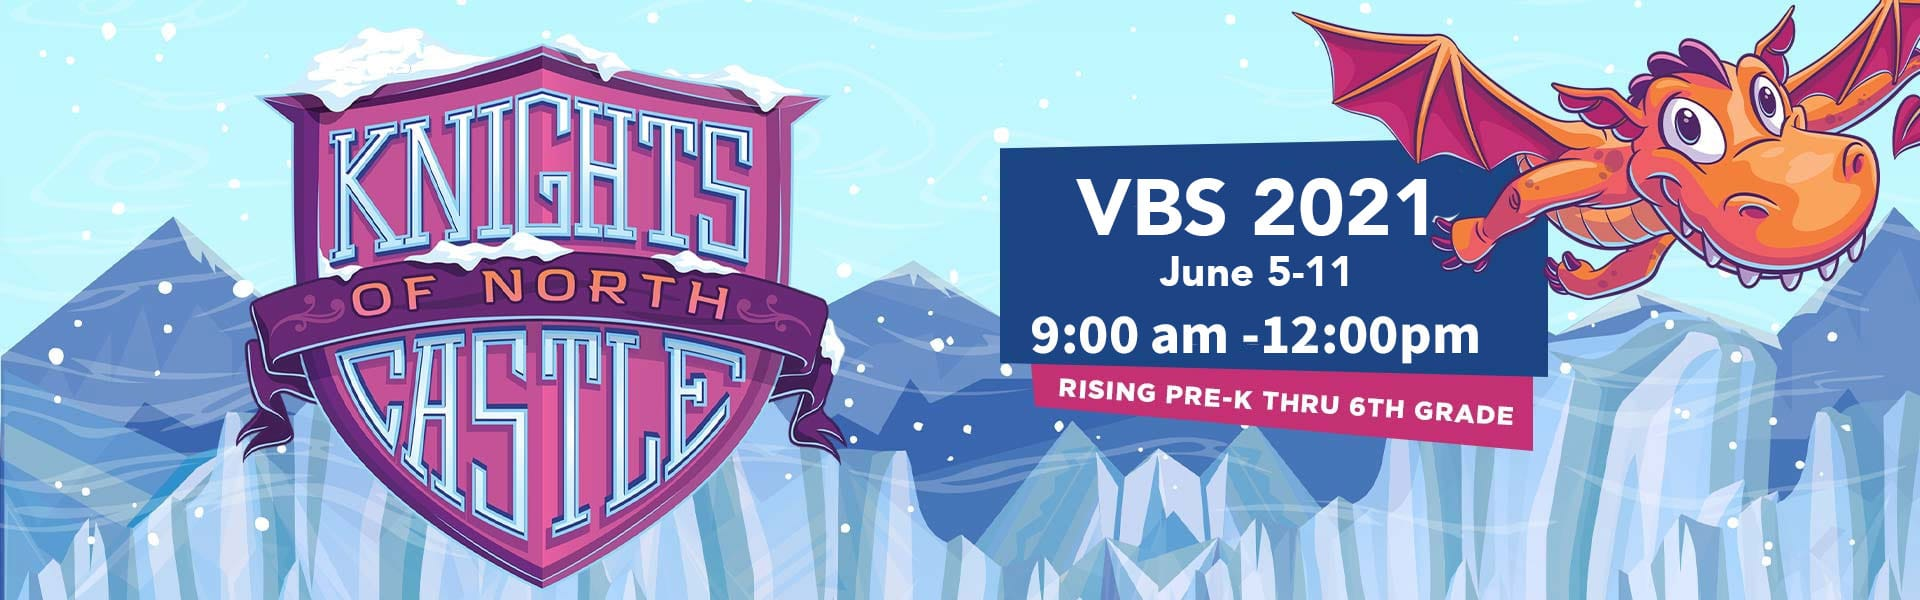 Come join us at VBS